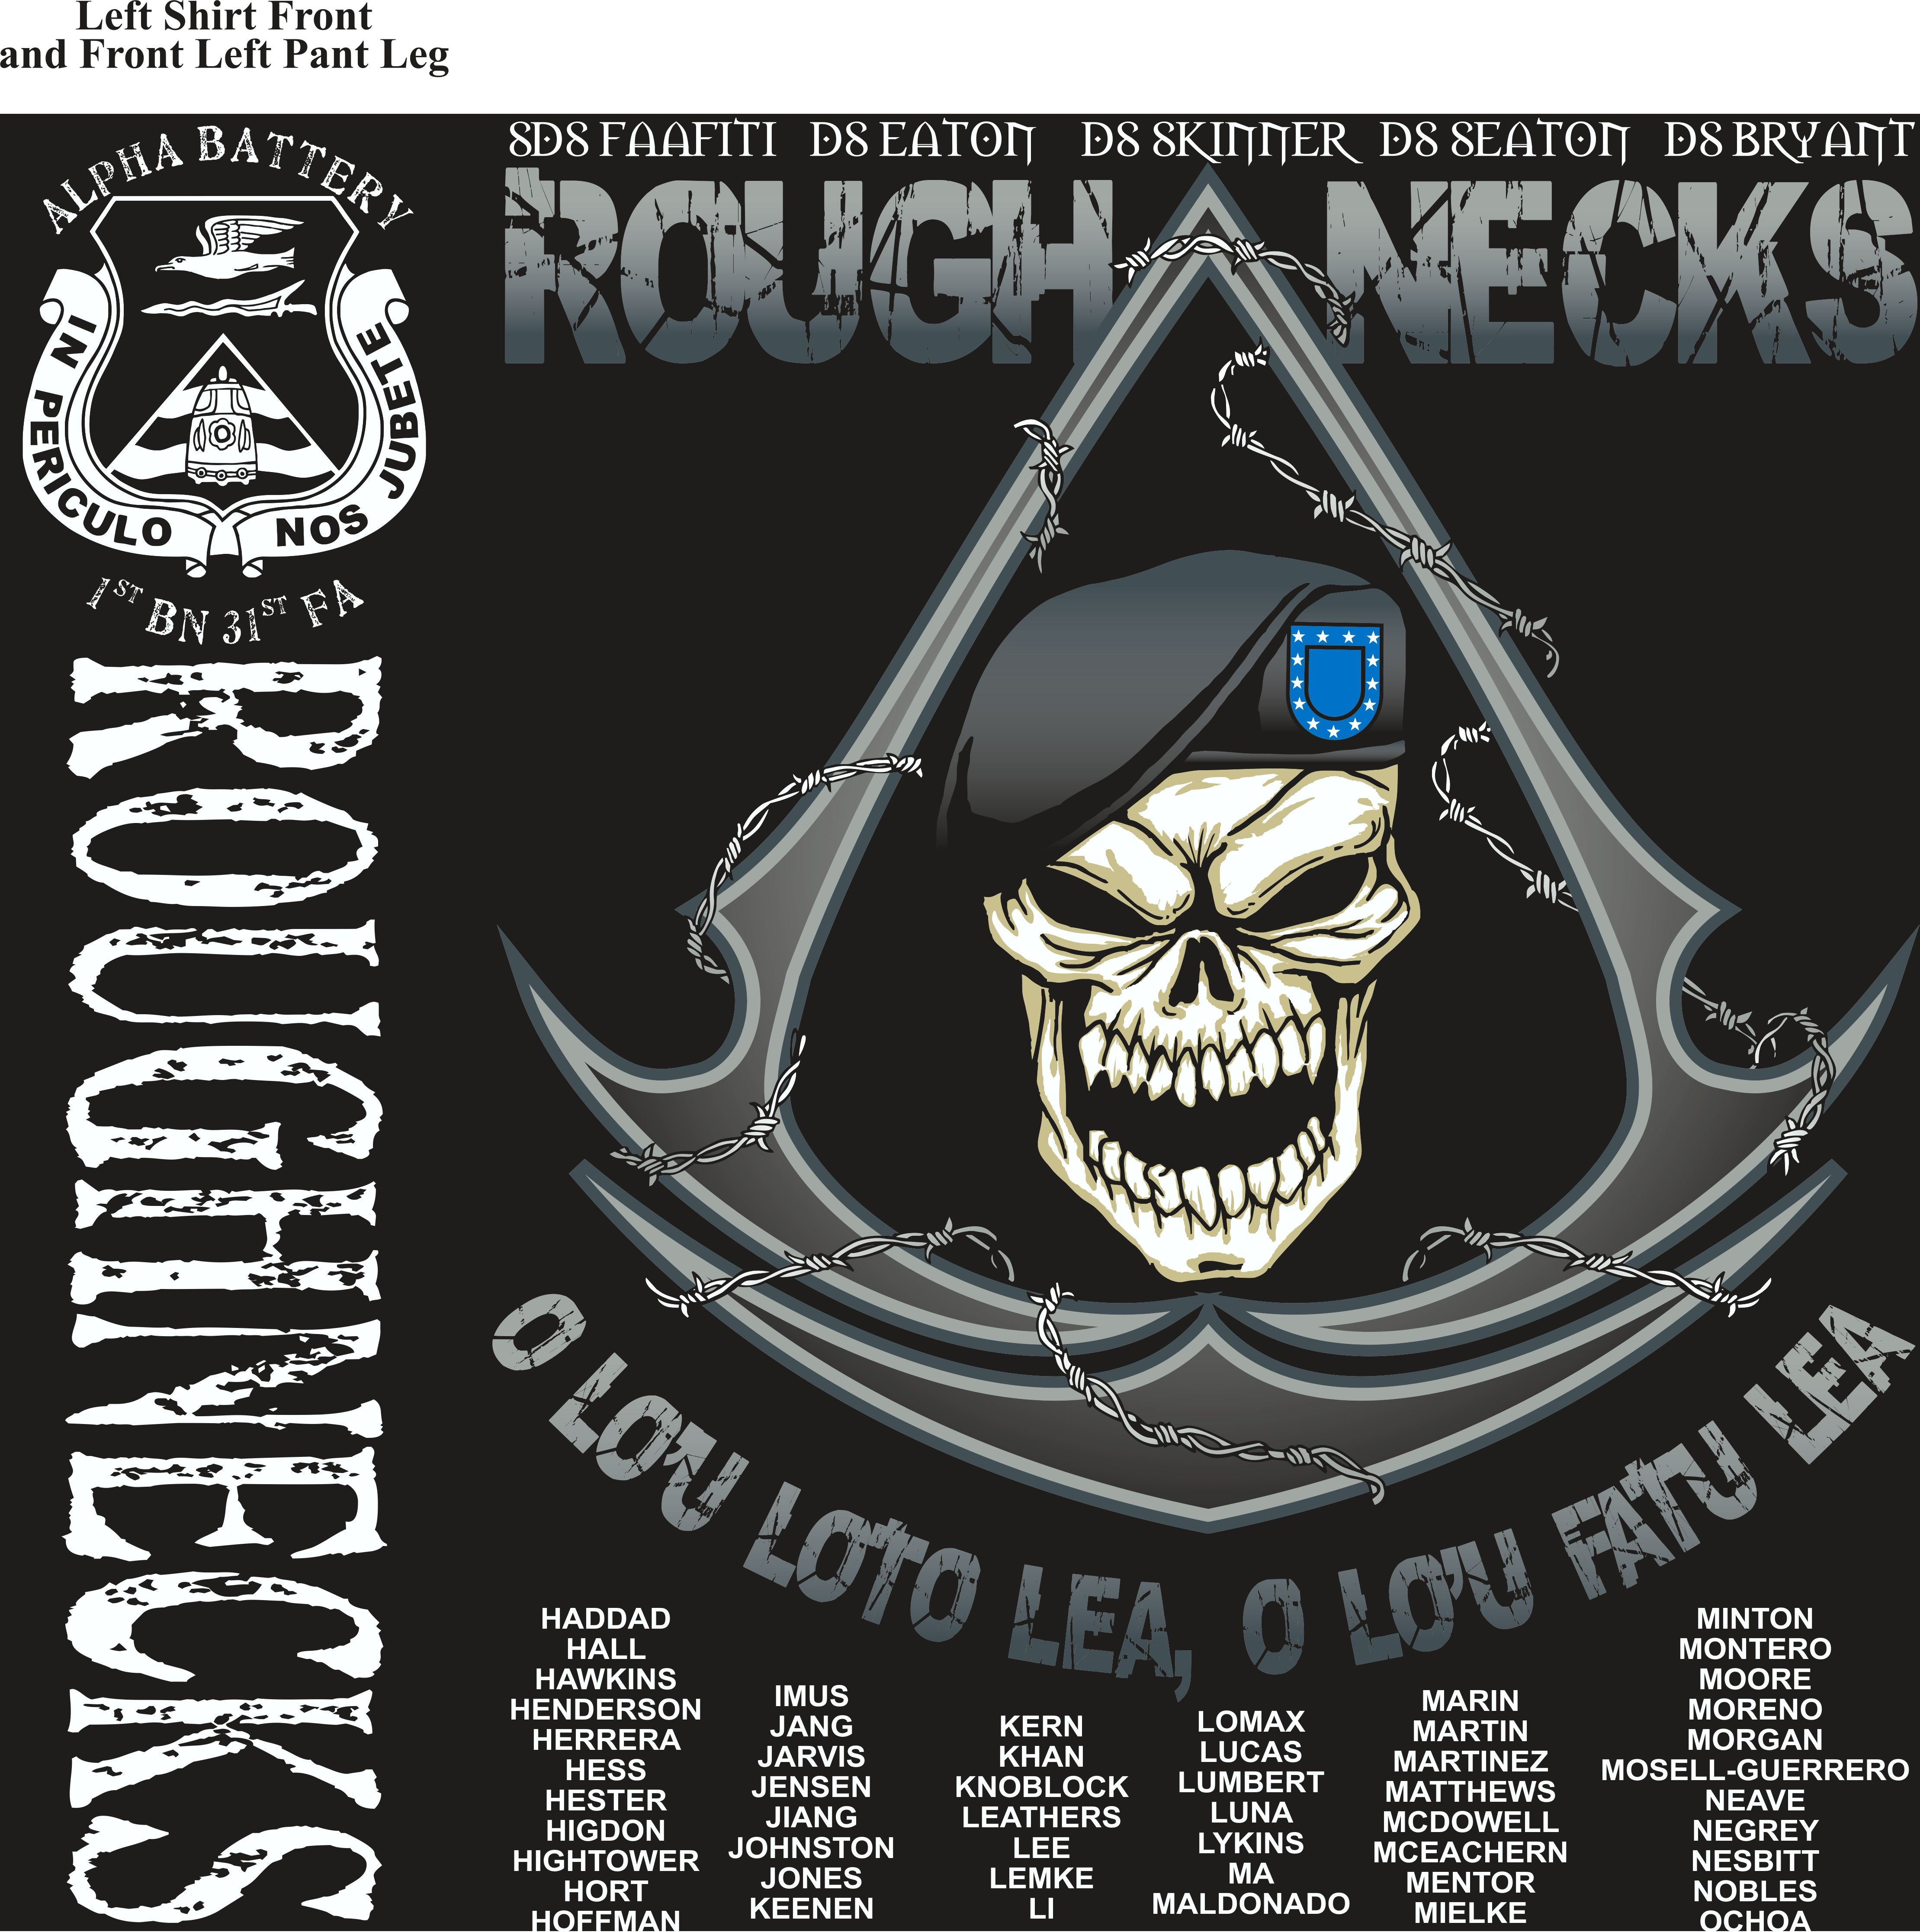 Platoon Shirts (2nd generation print) ALPHA 1st 31st ROUGHNECKS JUNE 2018